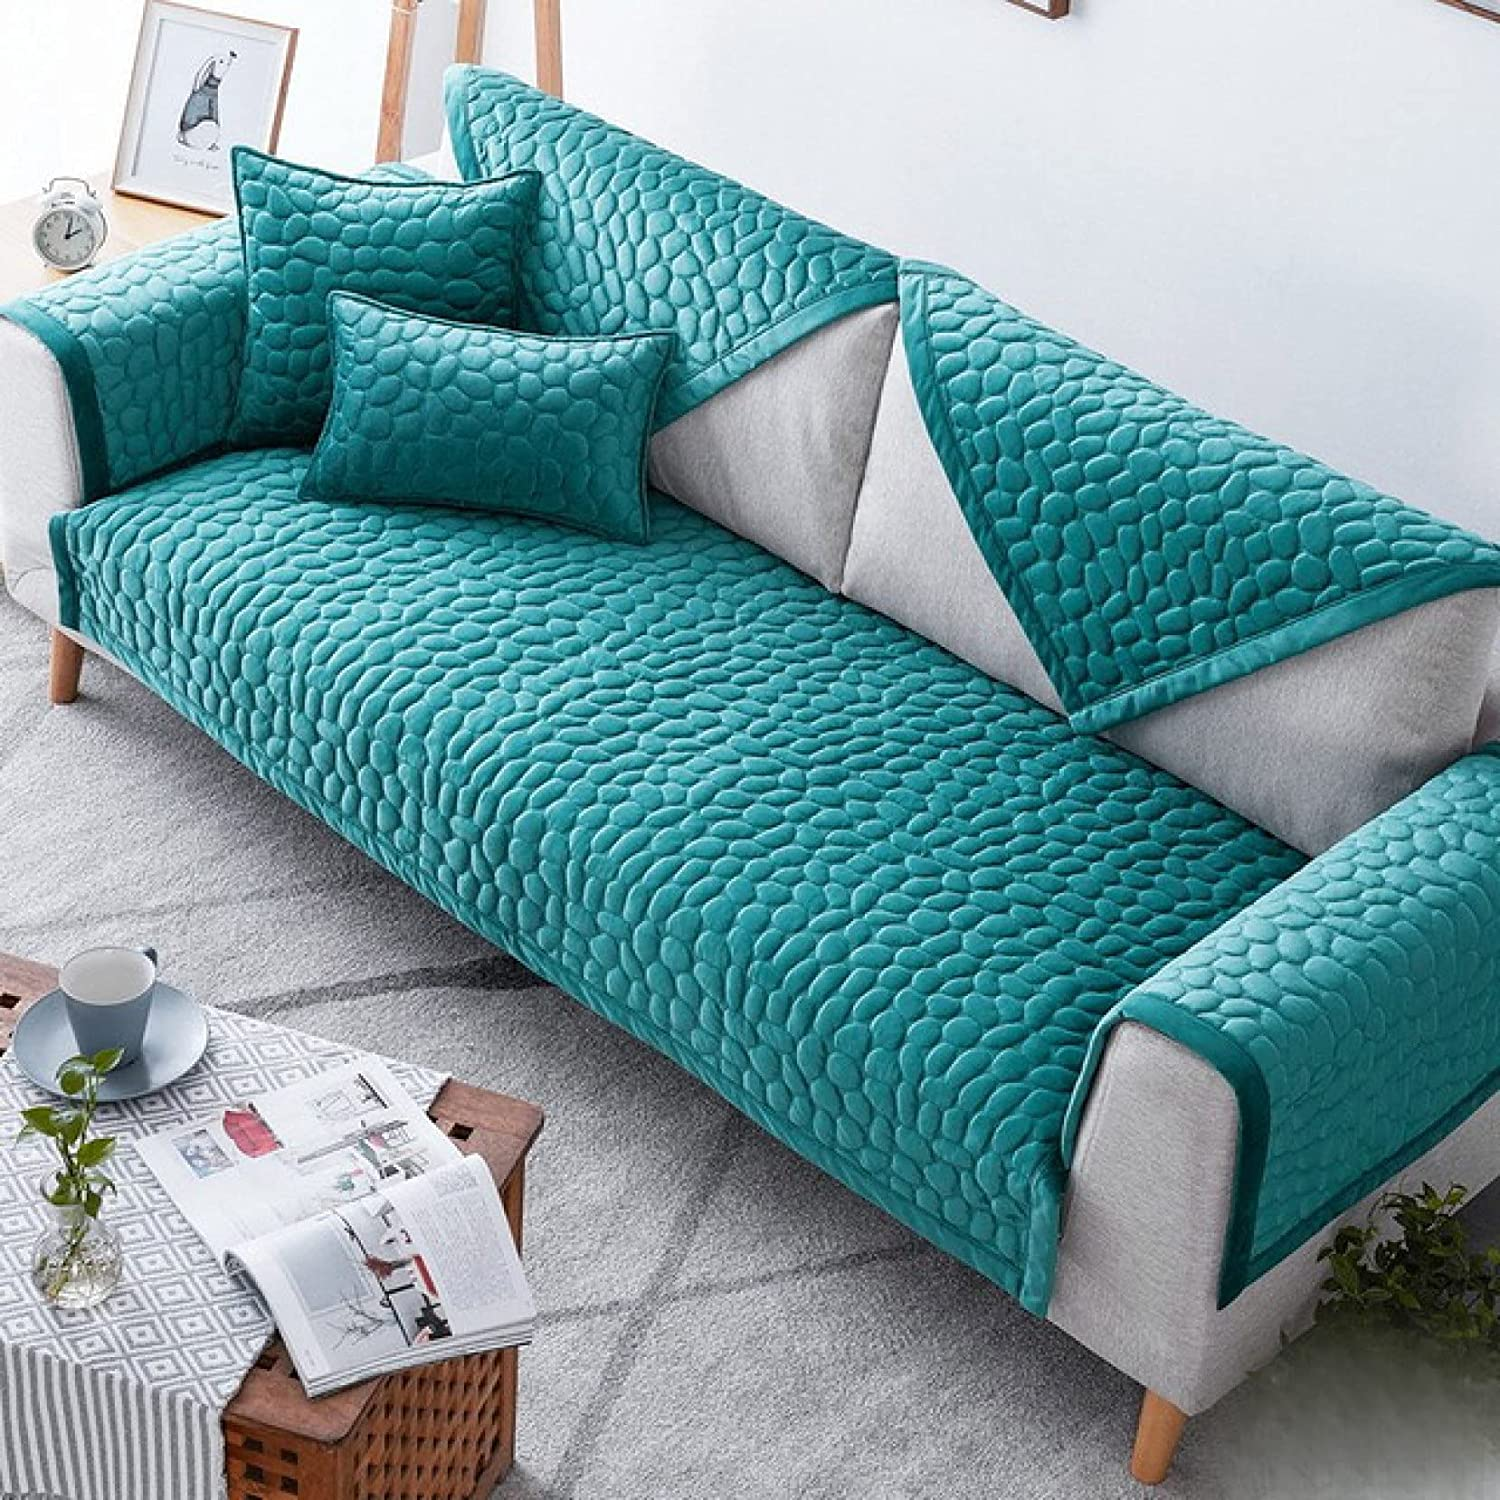 Sofa Slipcover Universal Max 74% OFF Towel Cover Slip Resistant Large discharge sale Couch C